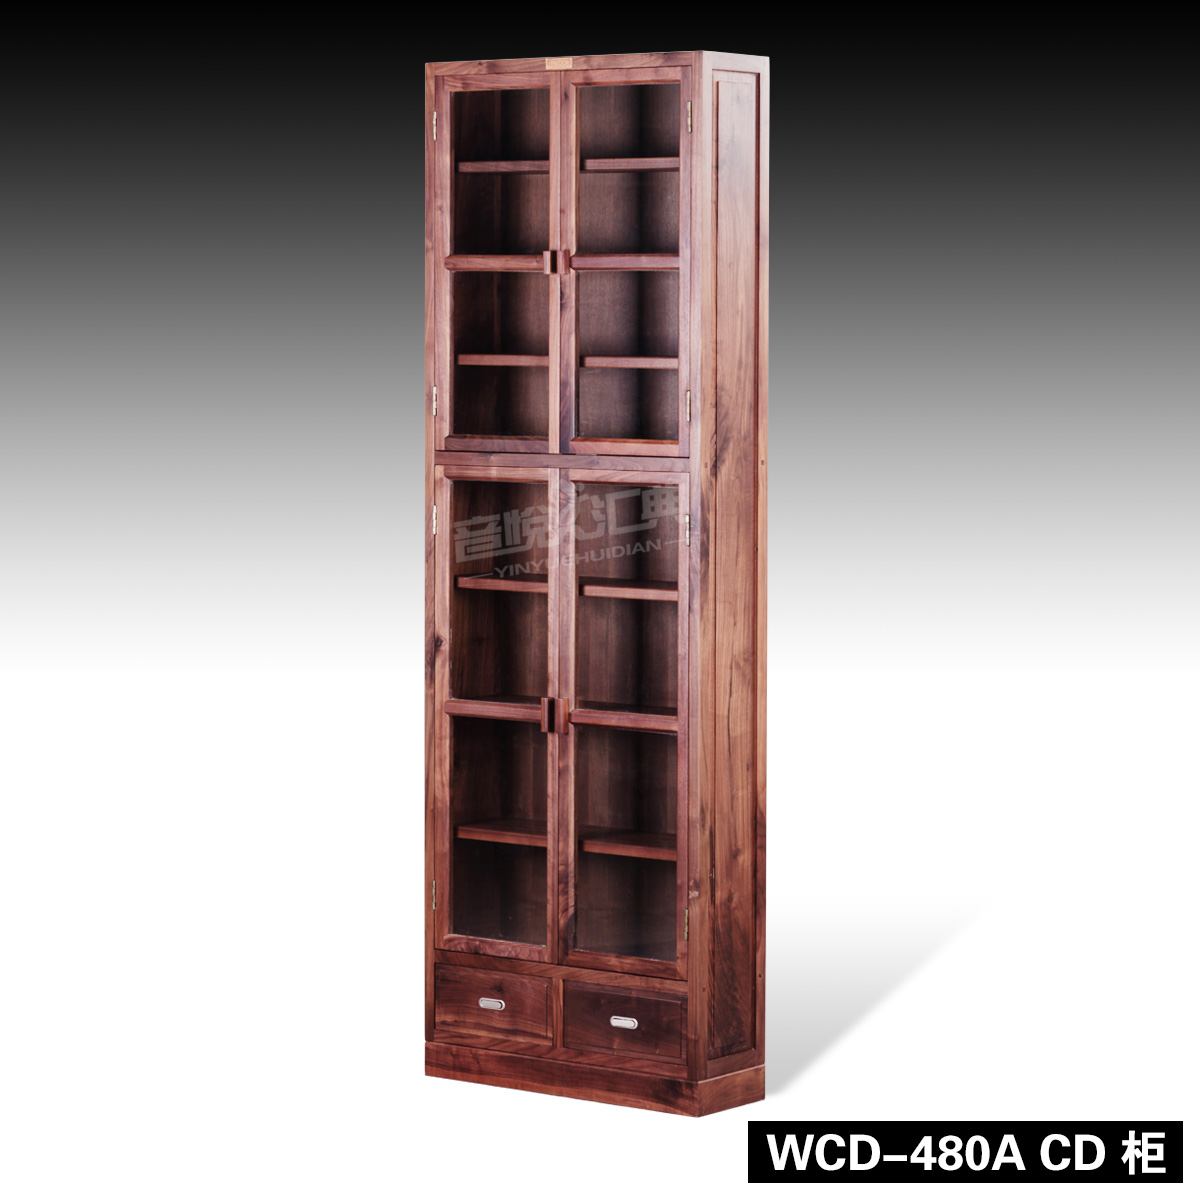 Sound Yue remit dictionary WCD-480A glass door solid wood CD Cabinet CD rack record  sc 1 st  ChinaHao.com & USD 438.93] Sound Yue remit dictionary WCD-480A glass door solid ...